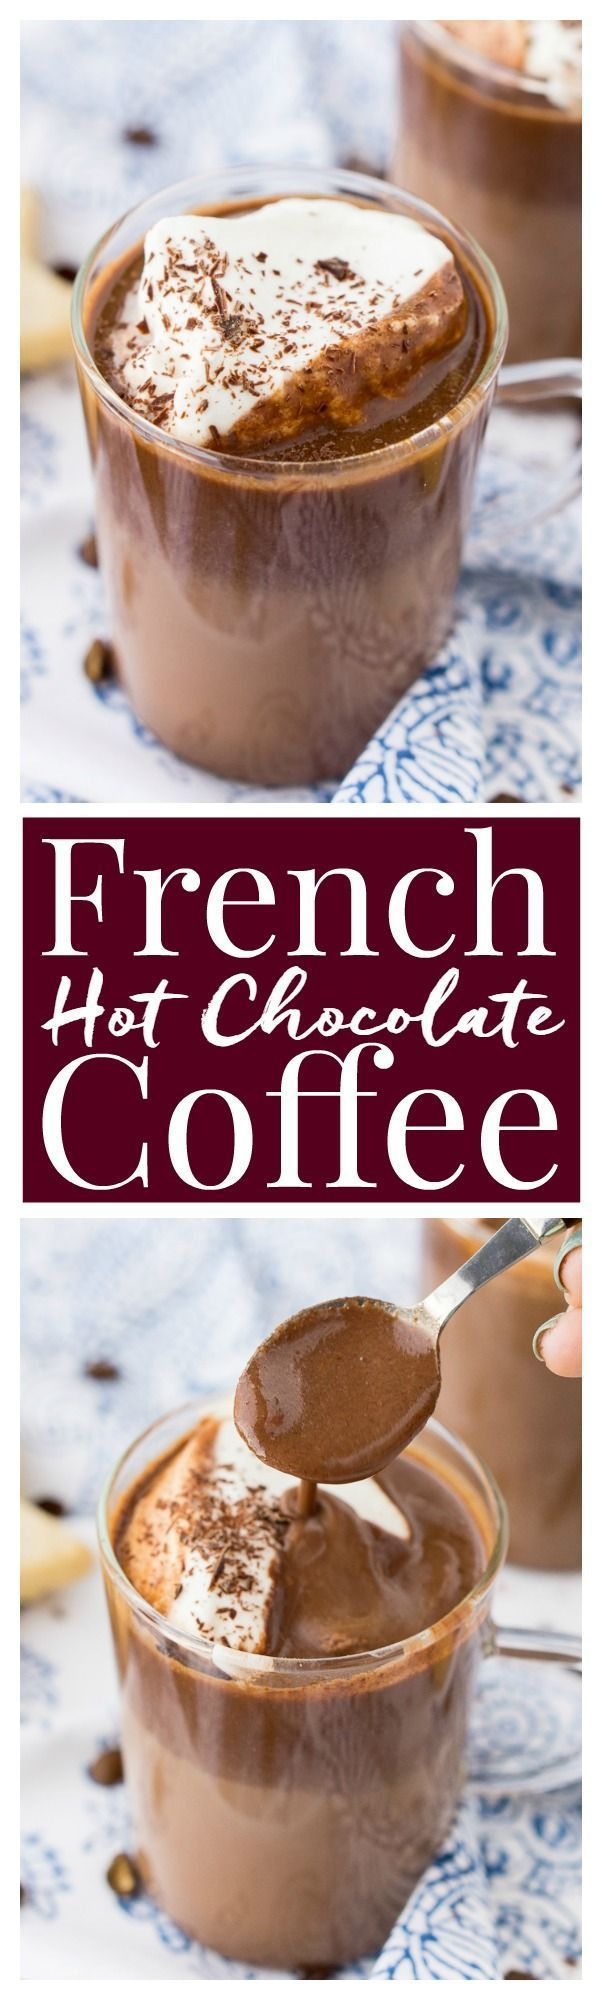 This French Hot Chocolate Coffee is an indulgent blend of thick and creamy Parisian hot chocolate and bold hot dark roast coffee. The perfect brunch or dessert beverage for the holidays! #ad #DunkinHoliday